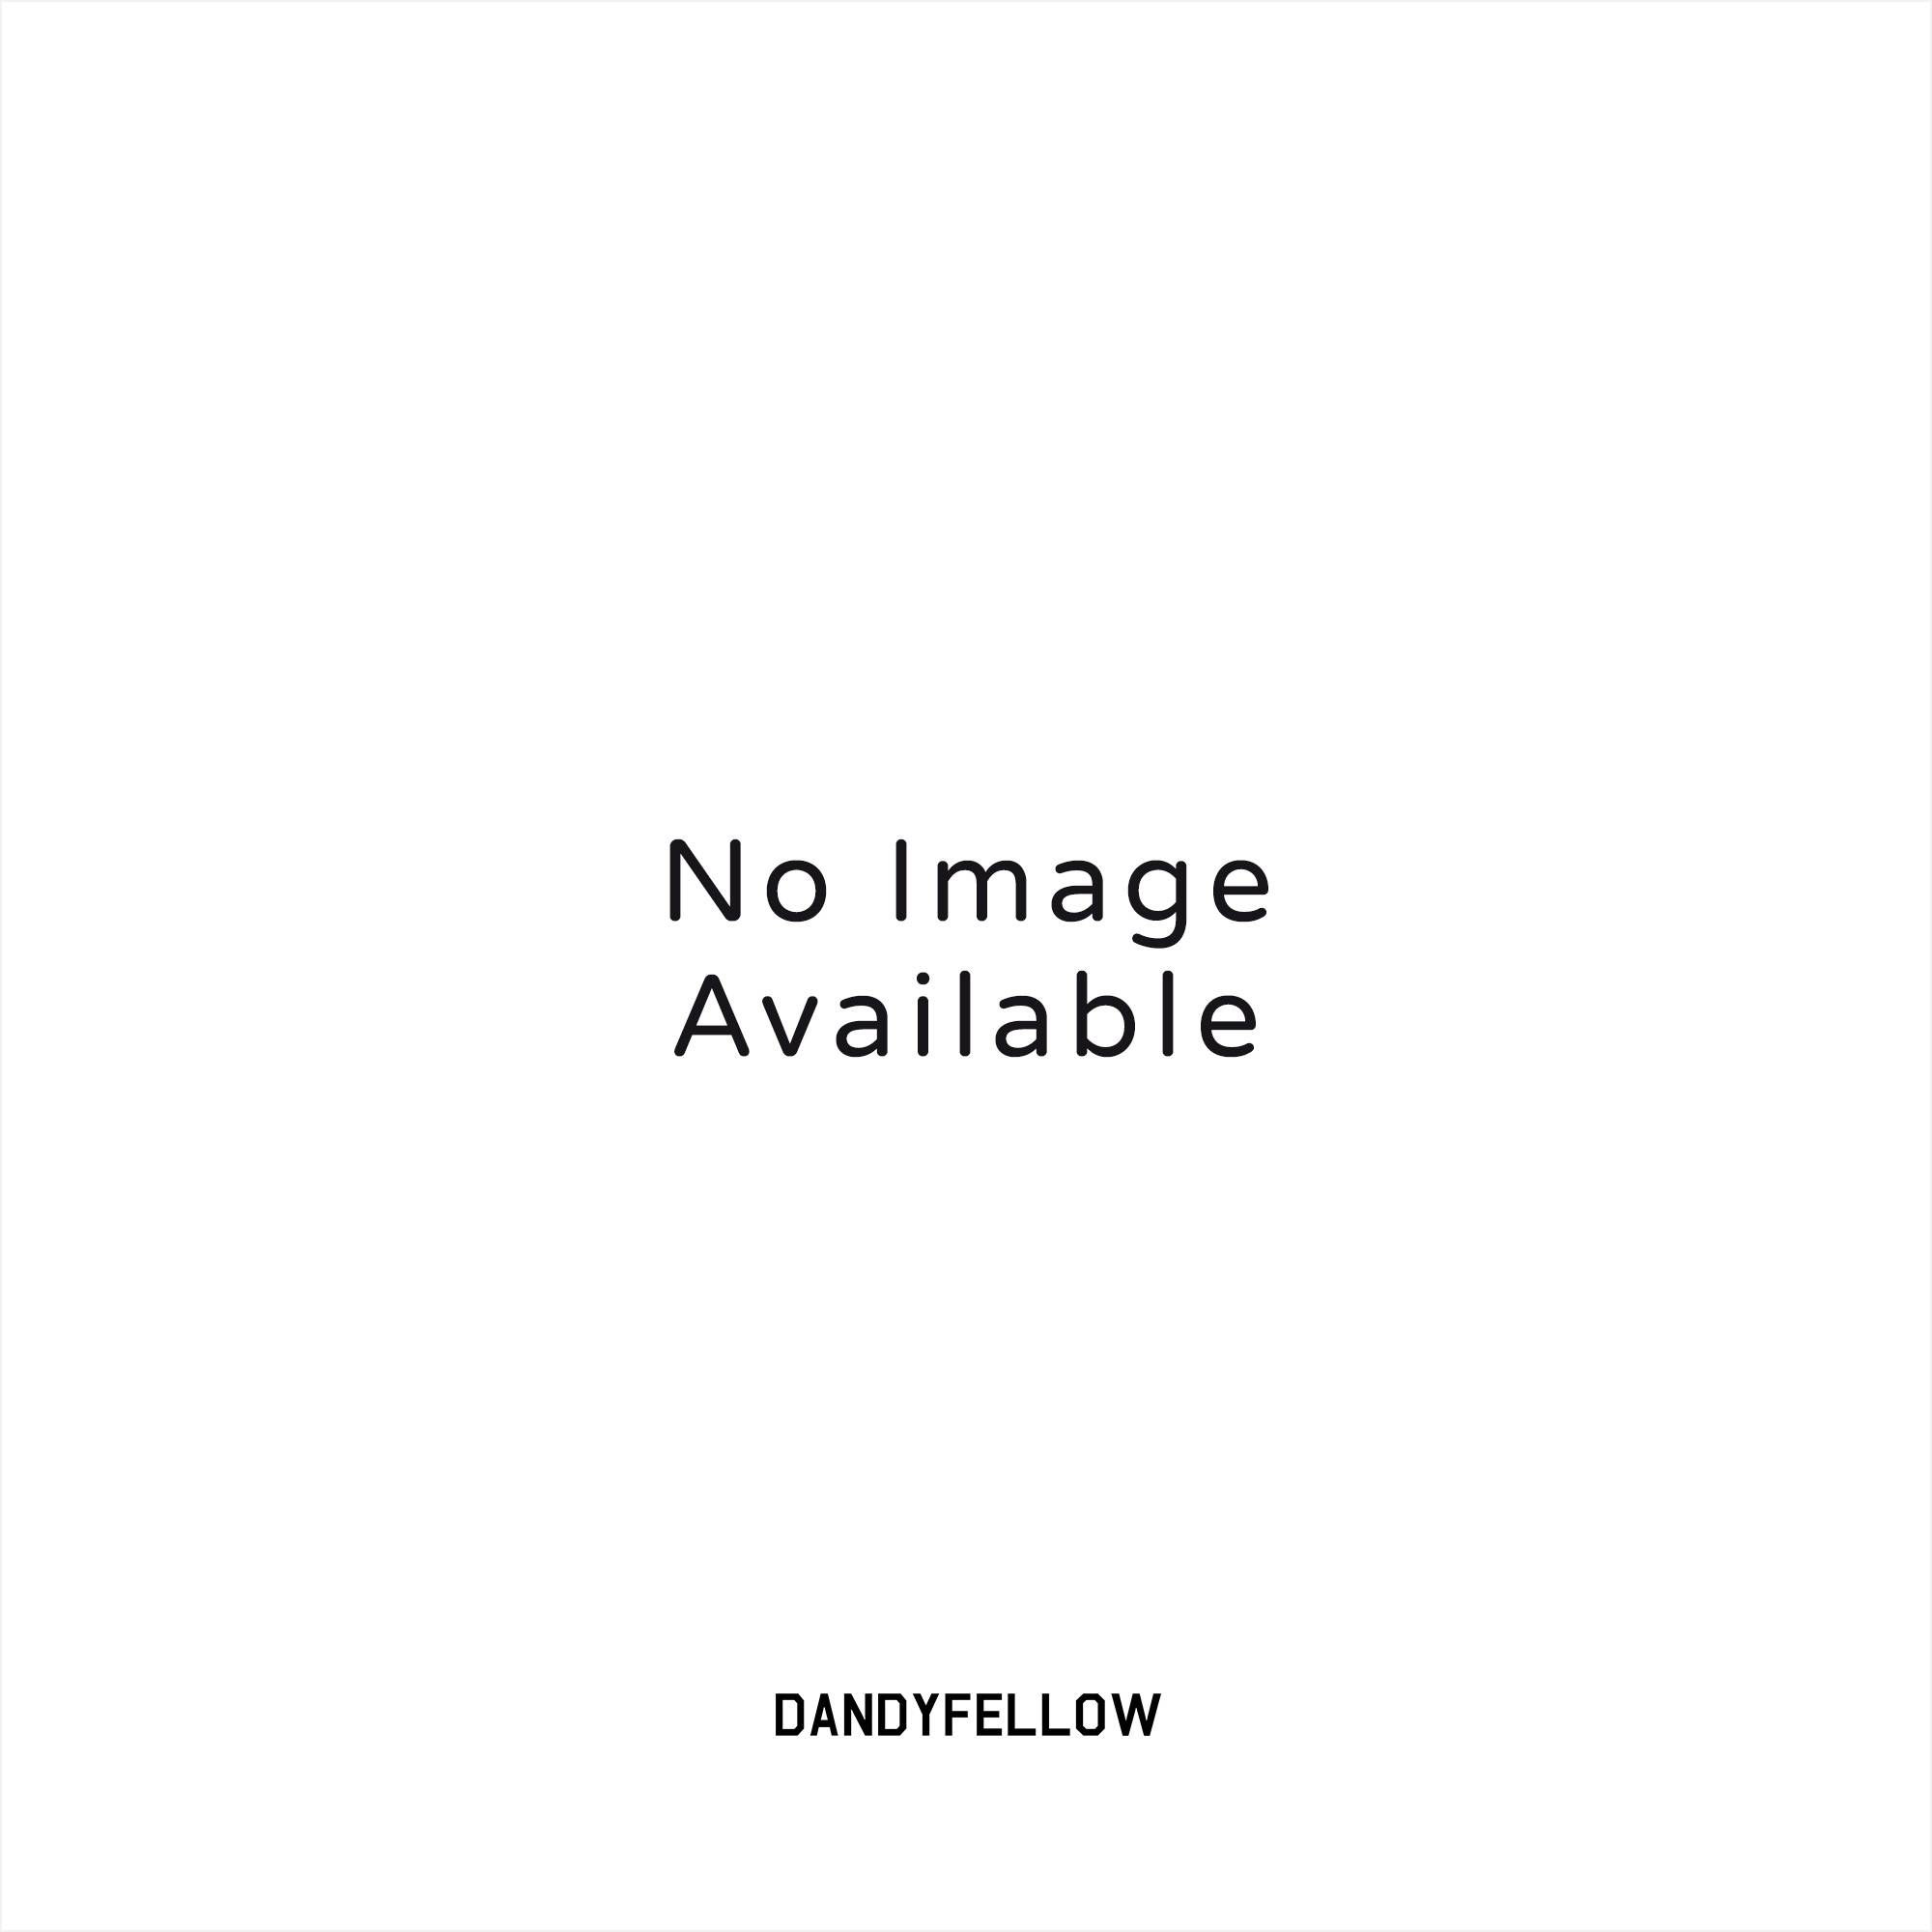 Fred Perry Laurel Wreath Fred Perry Single Tipped LS Charcoal Marl Polo Shirt M9320 948